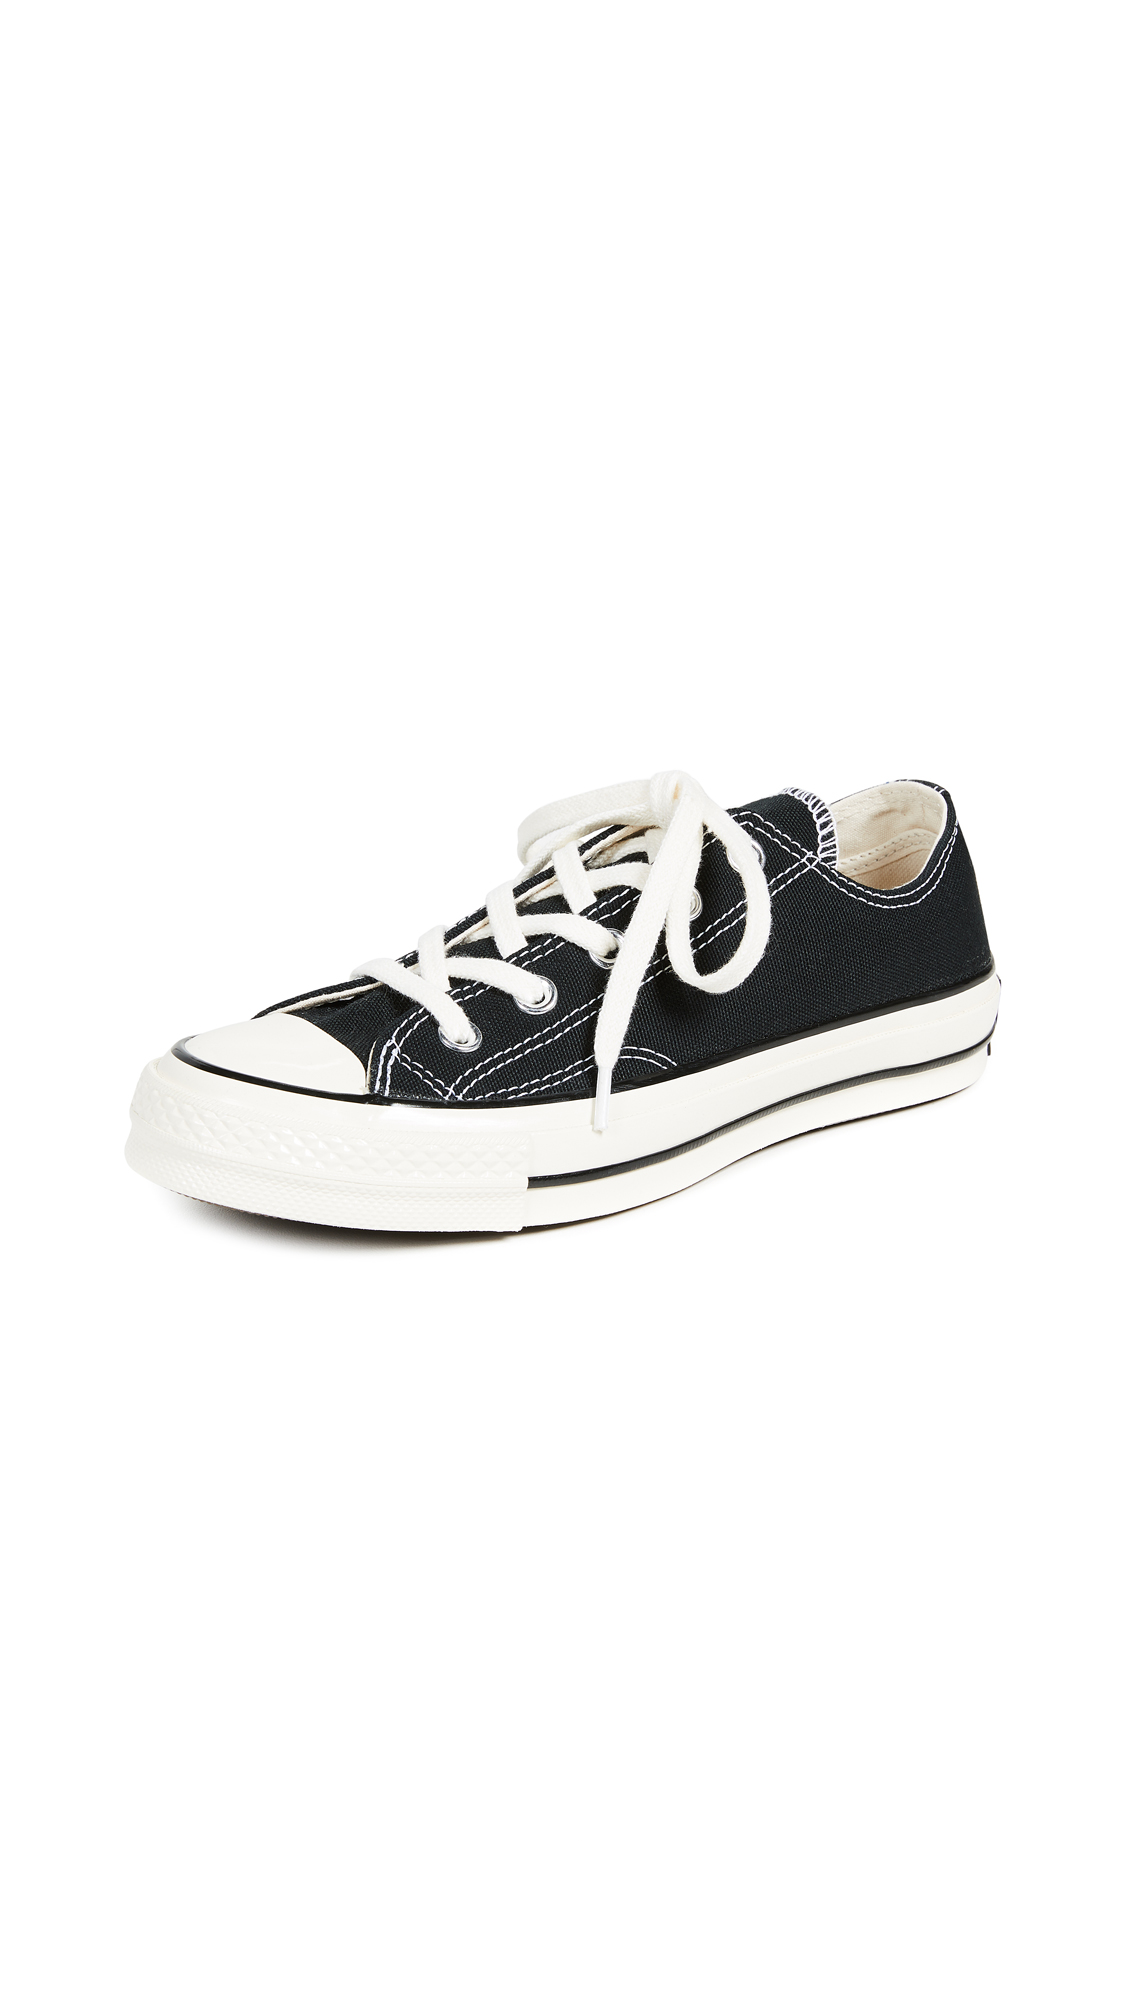 Converse Chuck Taylor All Star 70s Sneakers - Black